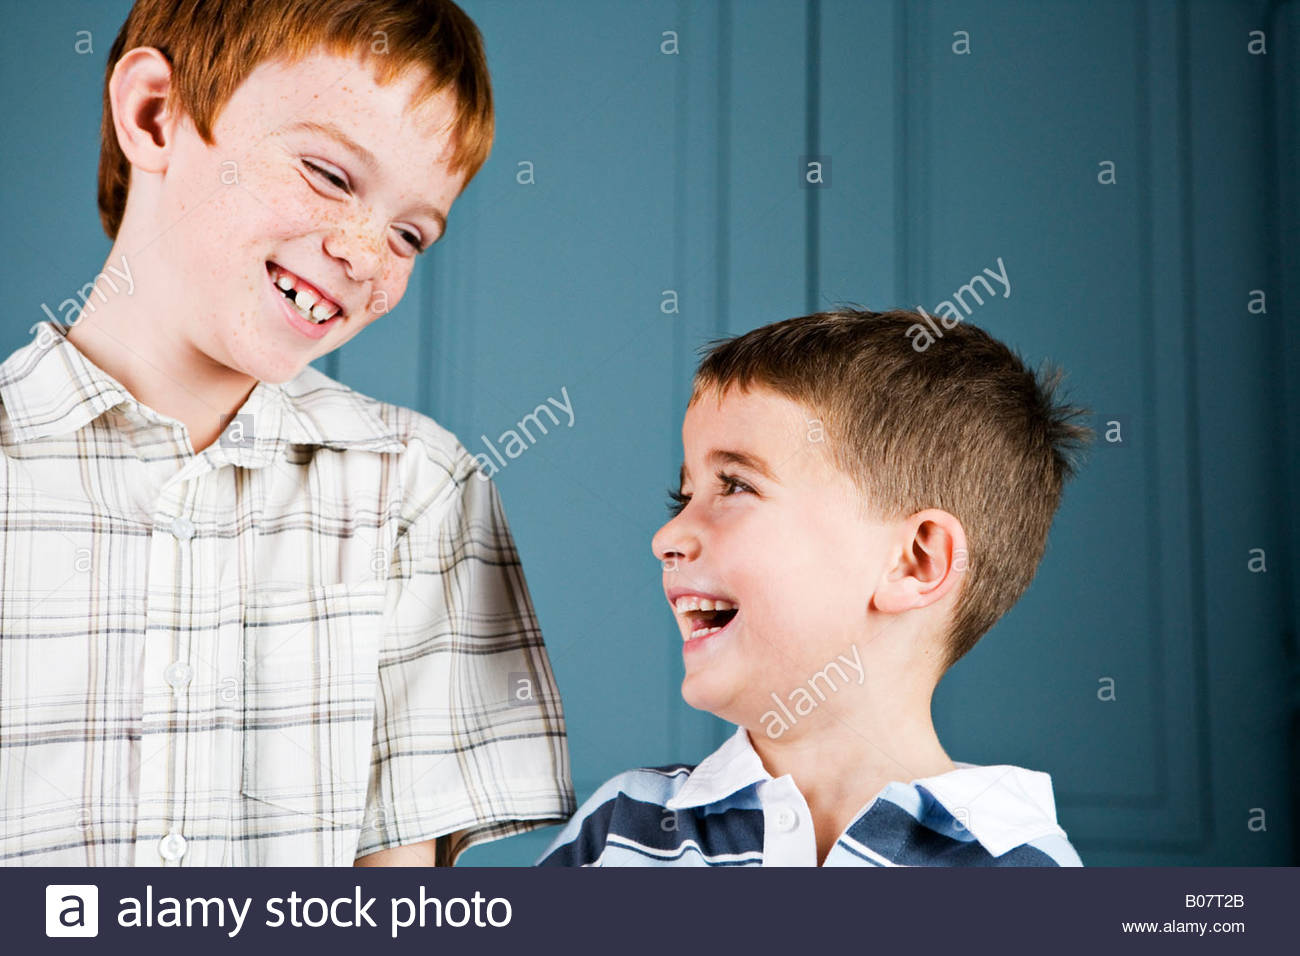 Older and younger boy laughing together - Stock Image